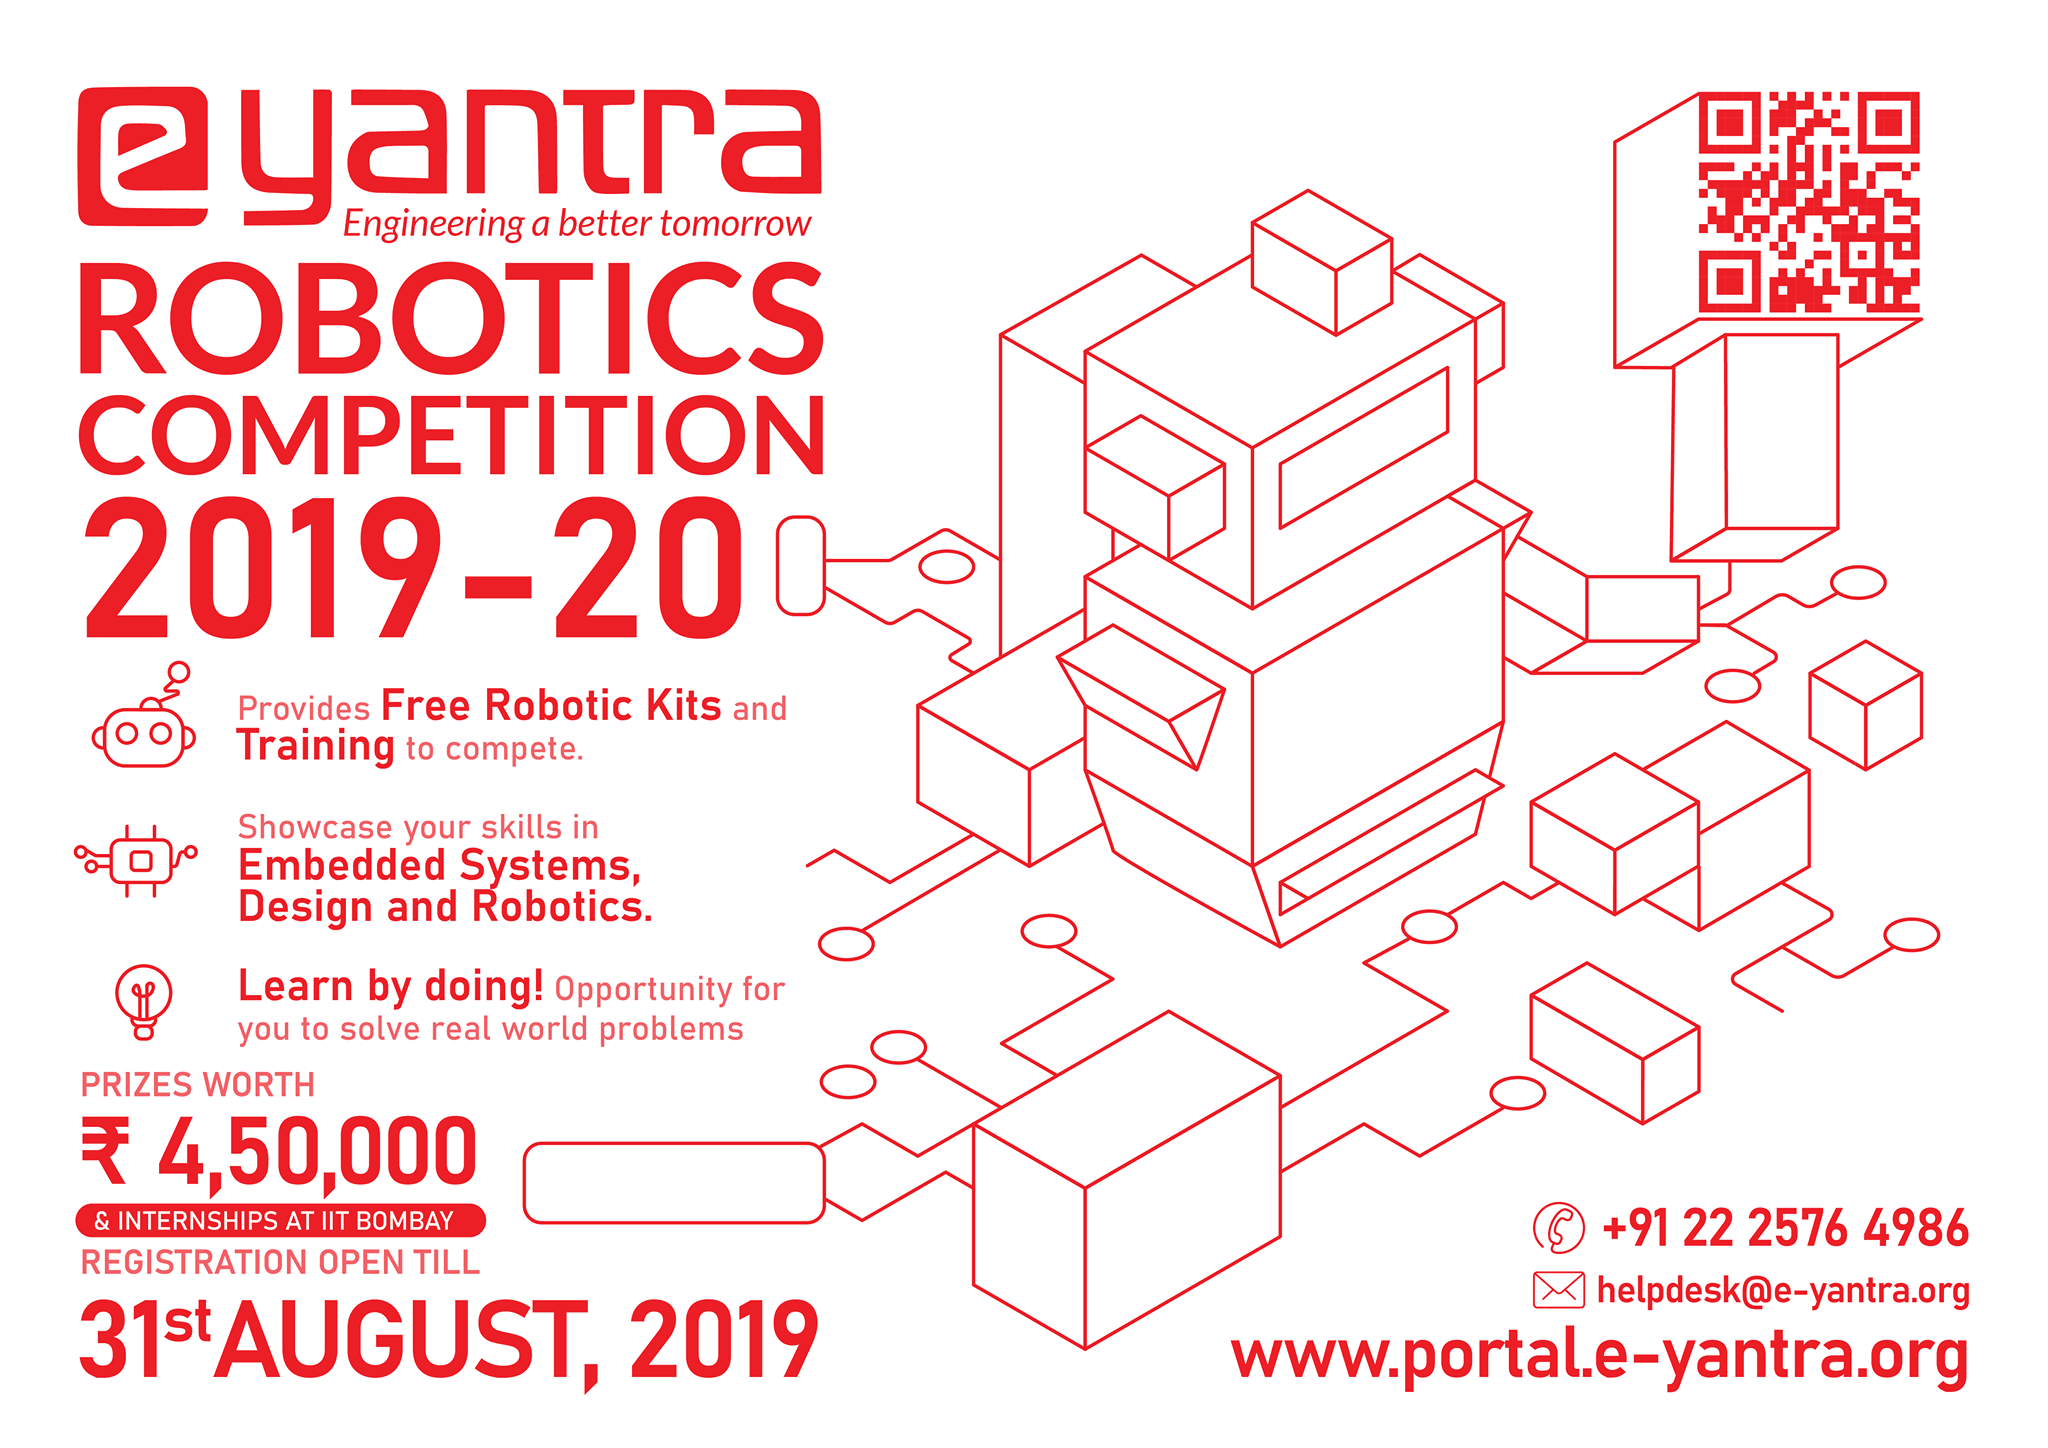 Eyantra-2019 IIT BOMBAY Robotics Competition Launched